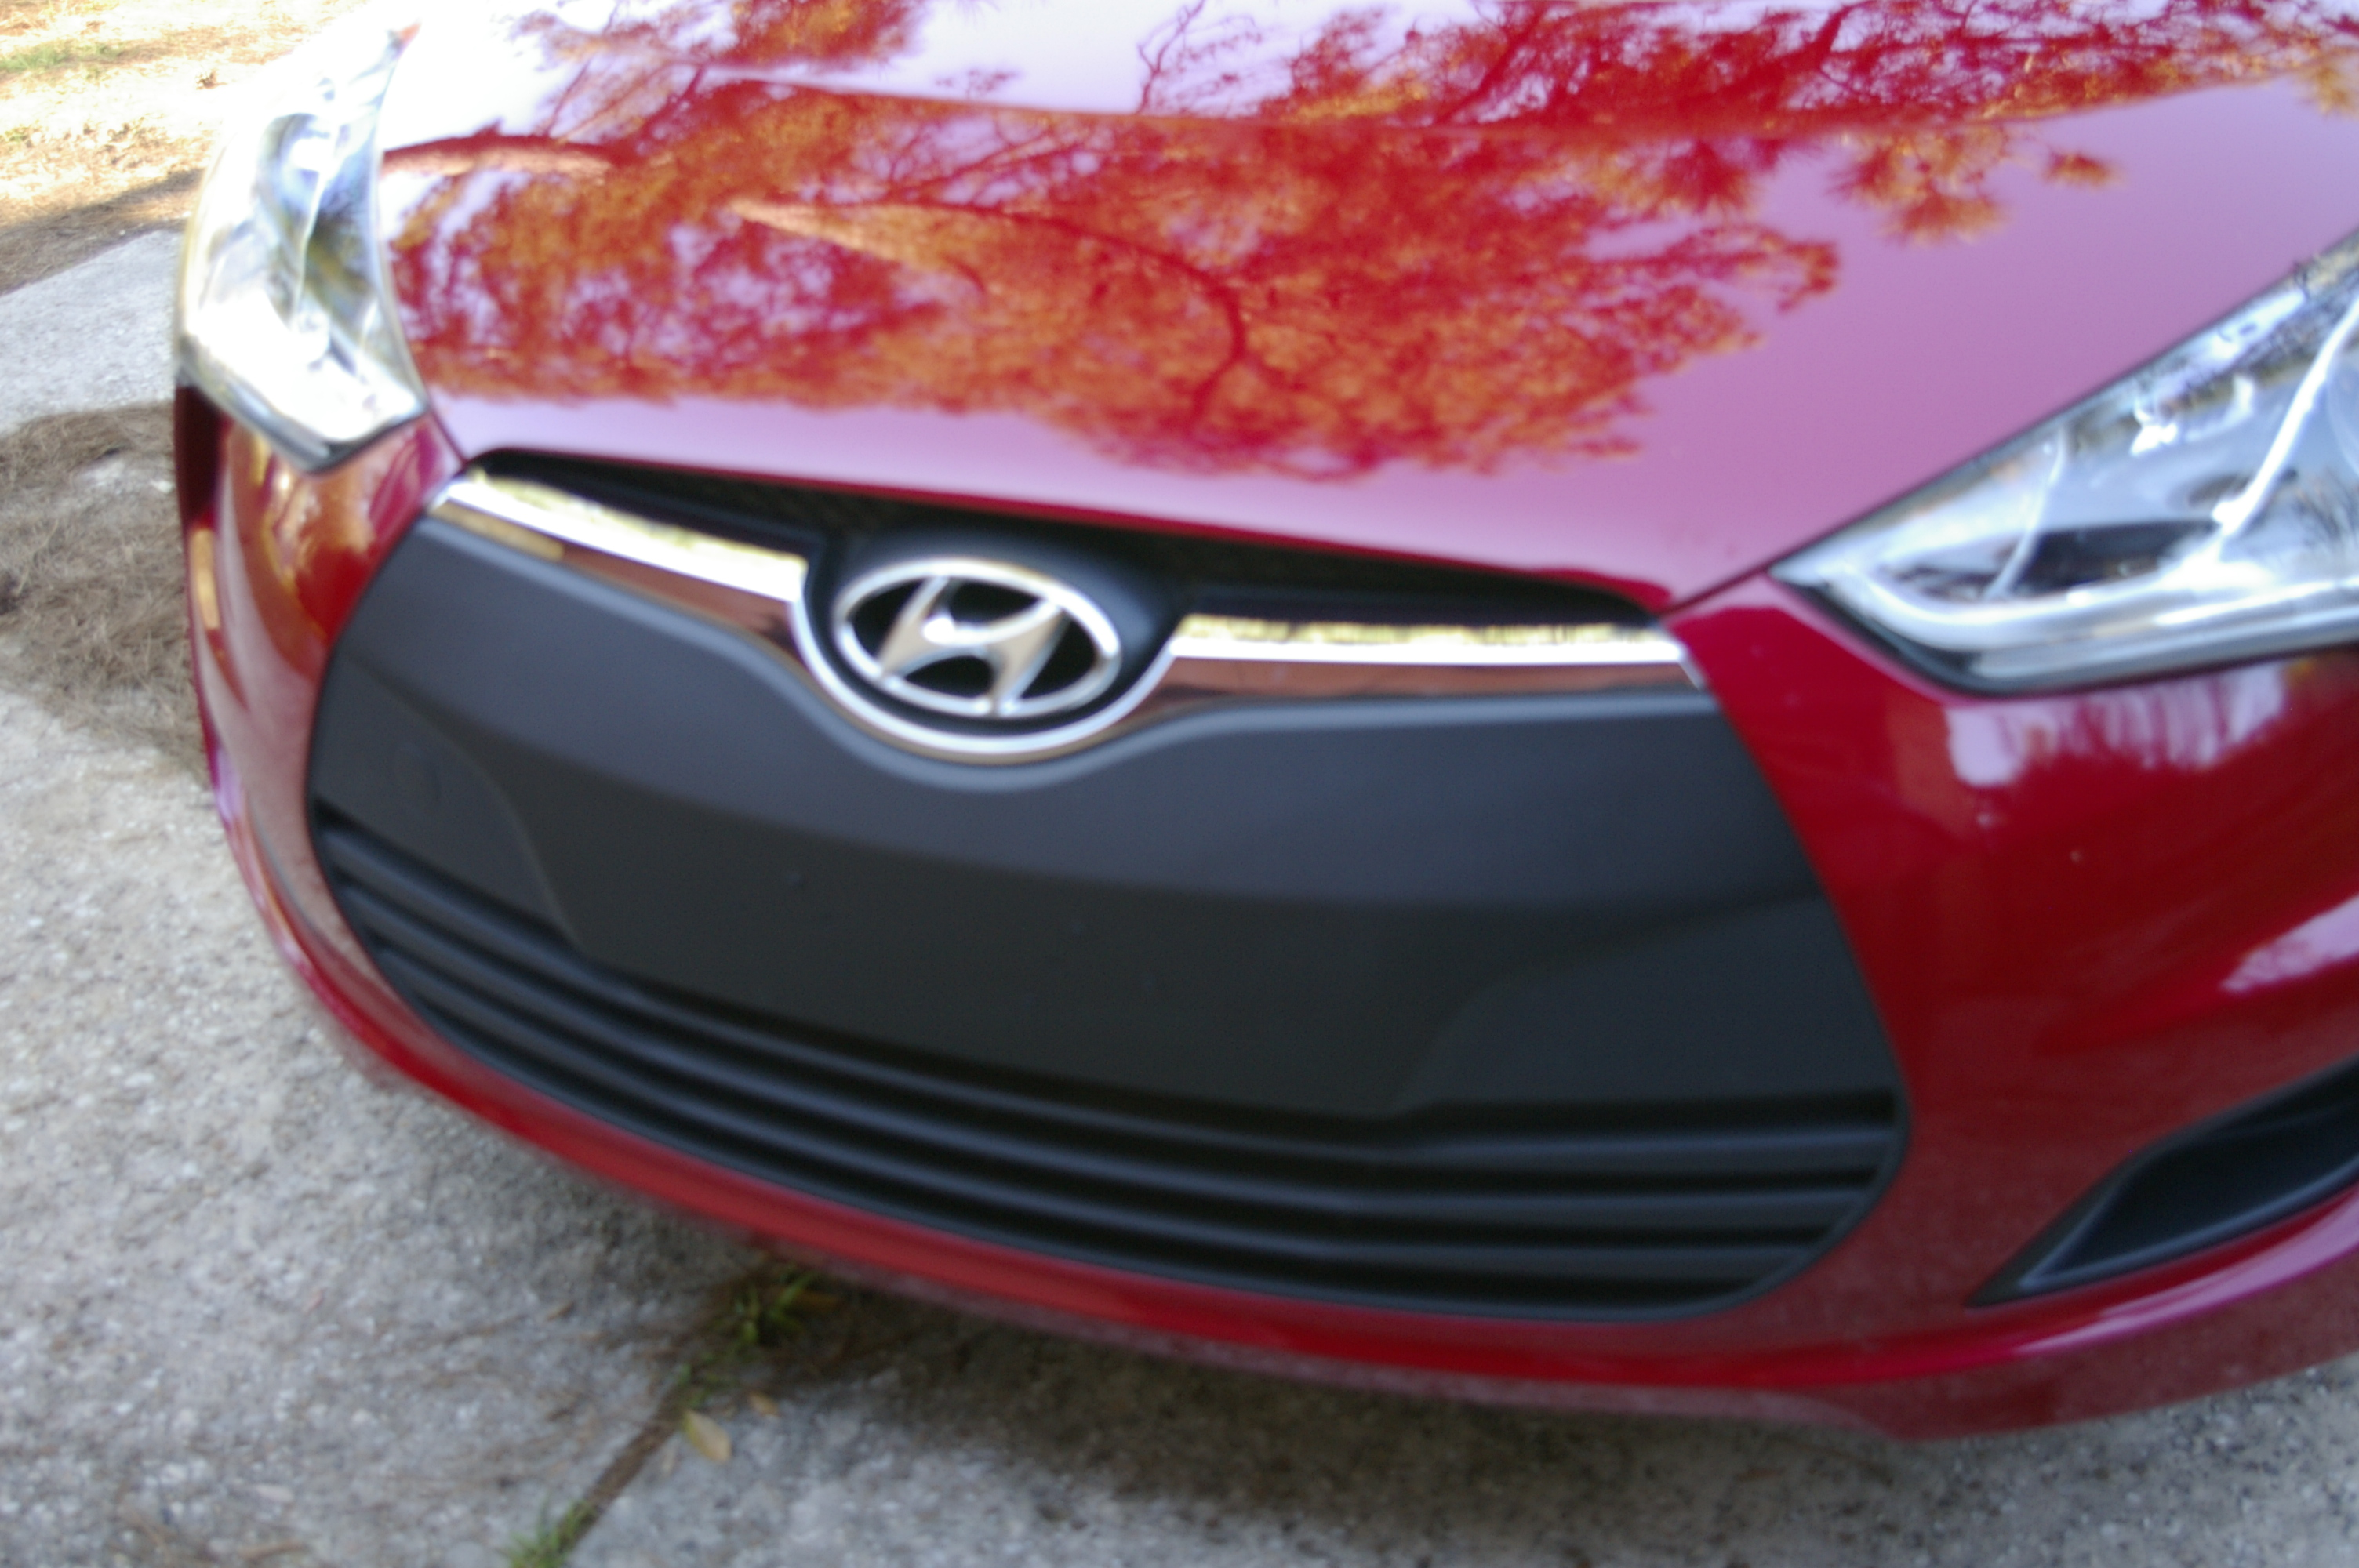 Blacked Out Front Grill On Red Veloster